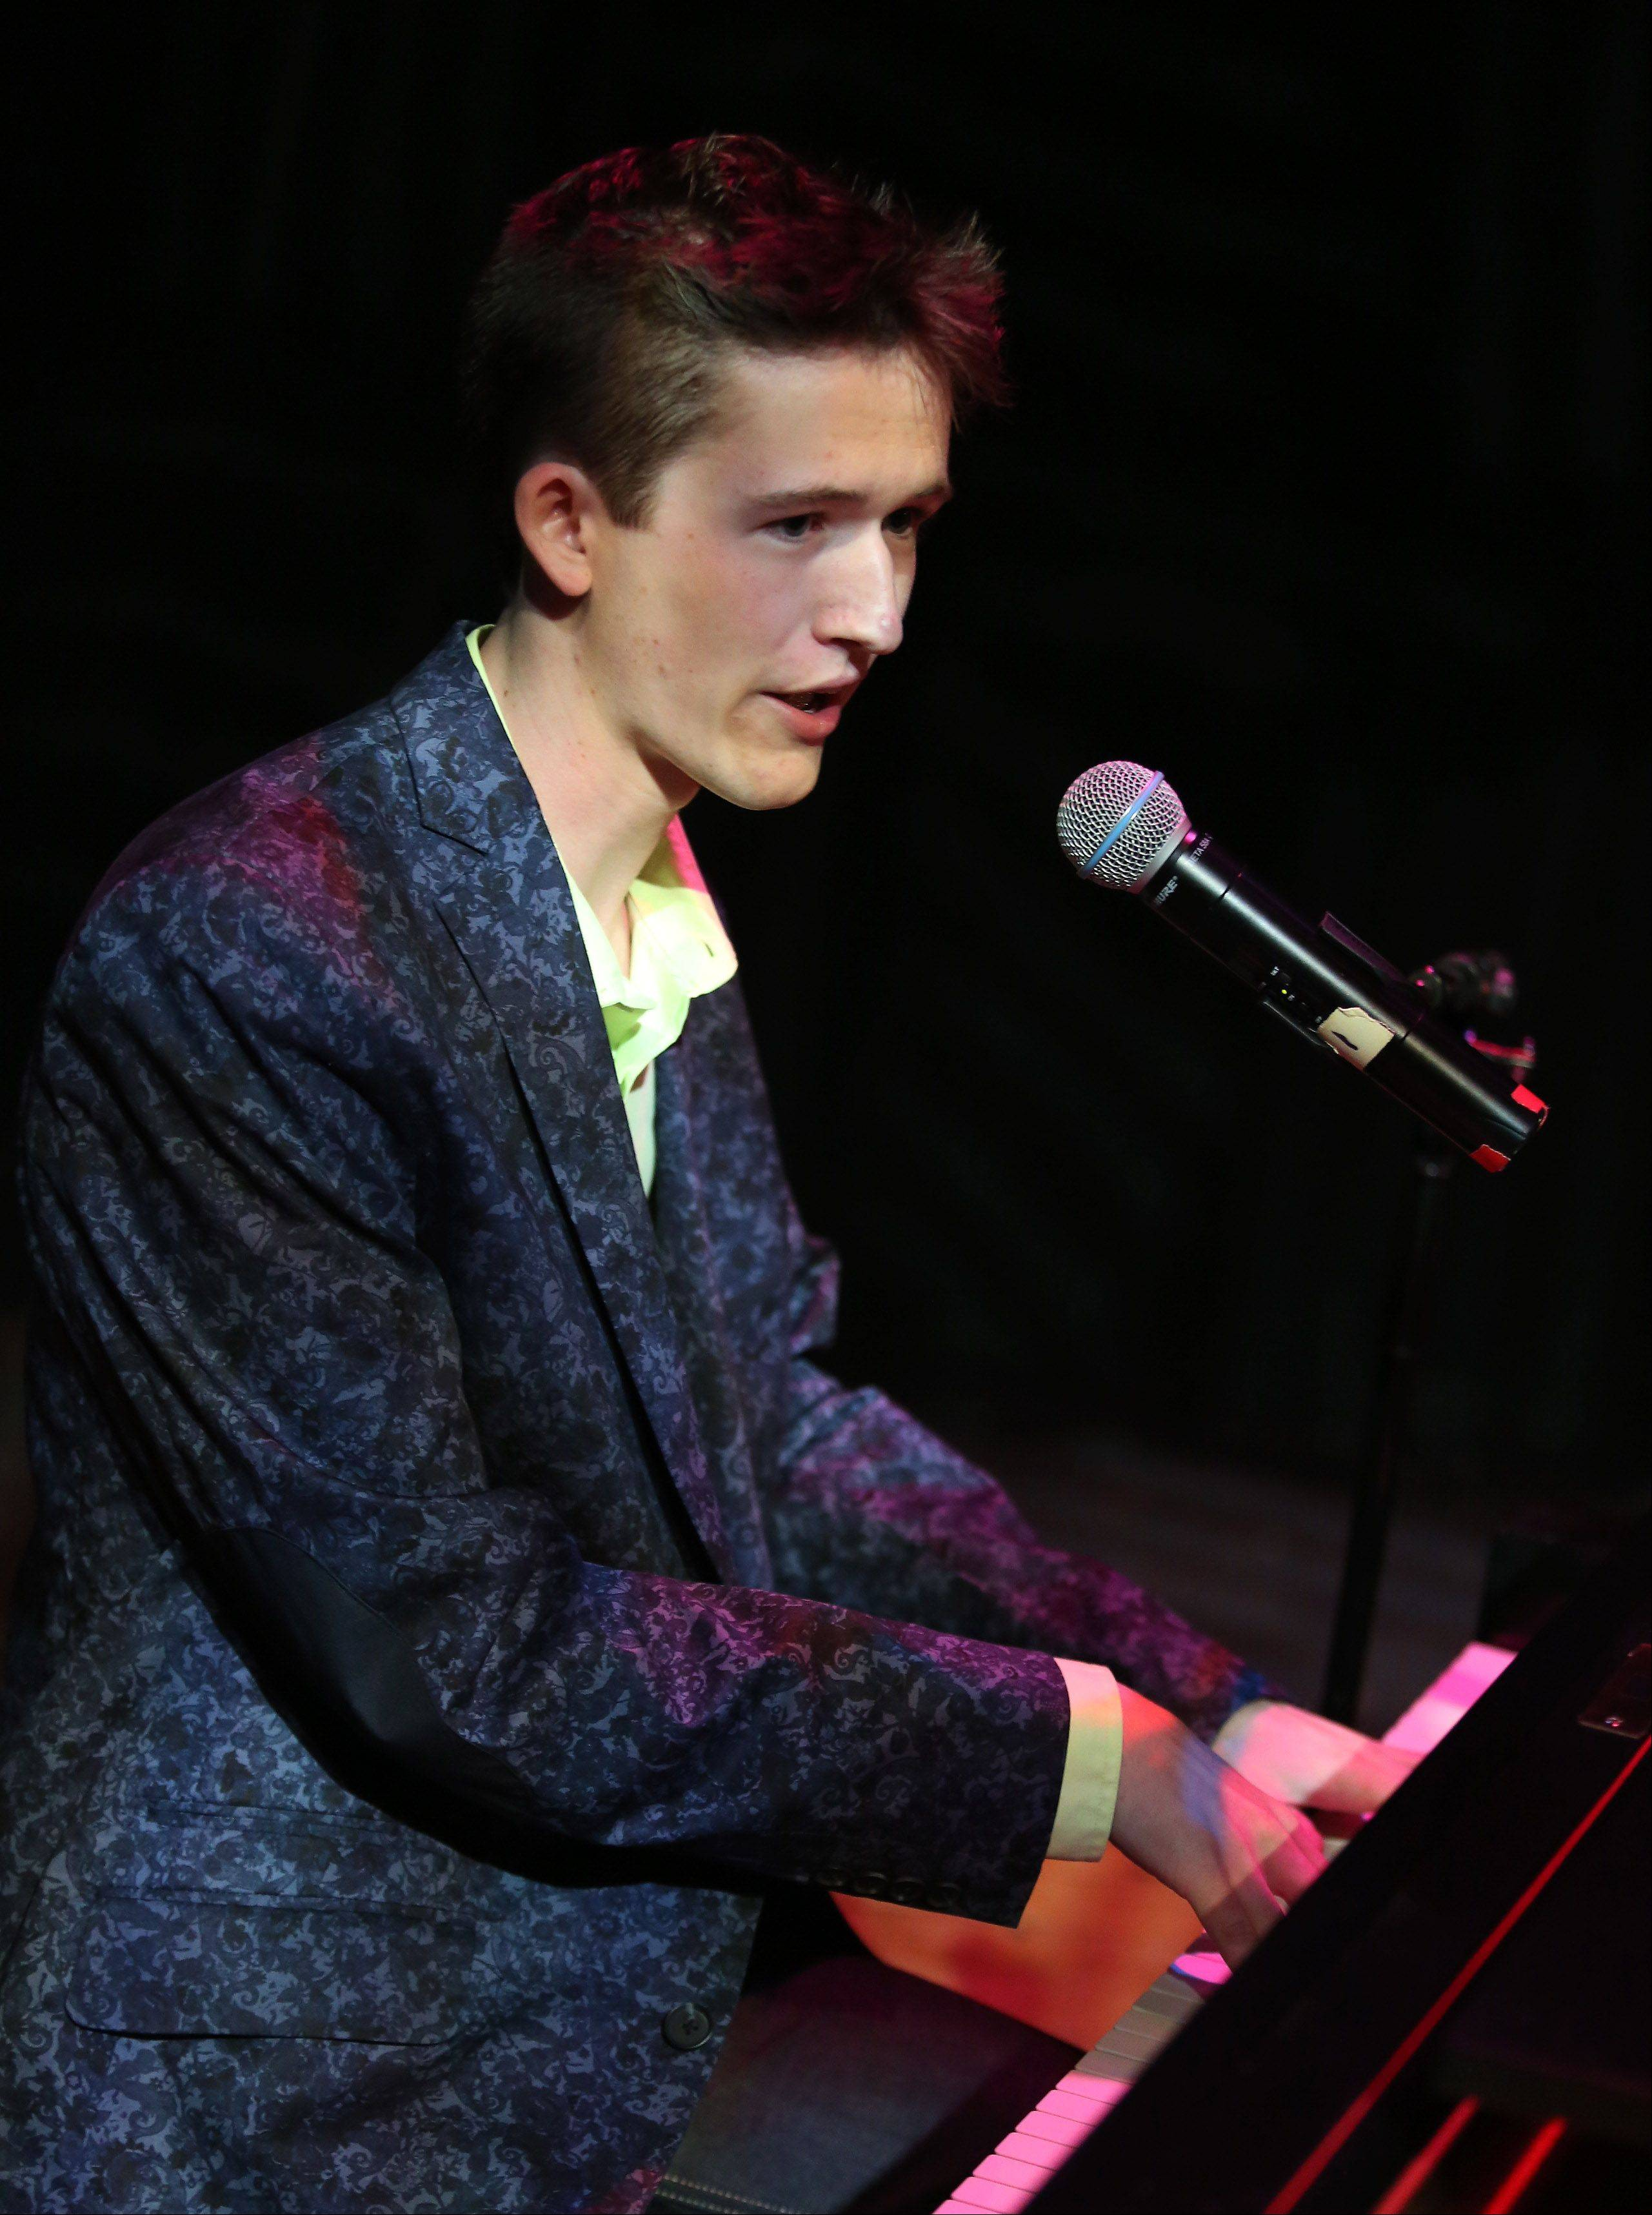 Riley Mangan of Arlington Heights plays the piano during Suburban Chicago's Got Talent competition Sunday night at the Metropolis Performing Arts Centre in Arlington Heights. The summer long talent contest is presented by the Daily Herald and sponsored by the Arlington Heights Chamber of Commerce.